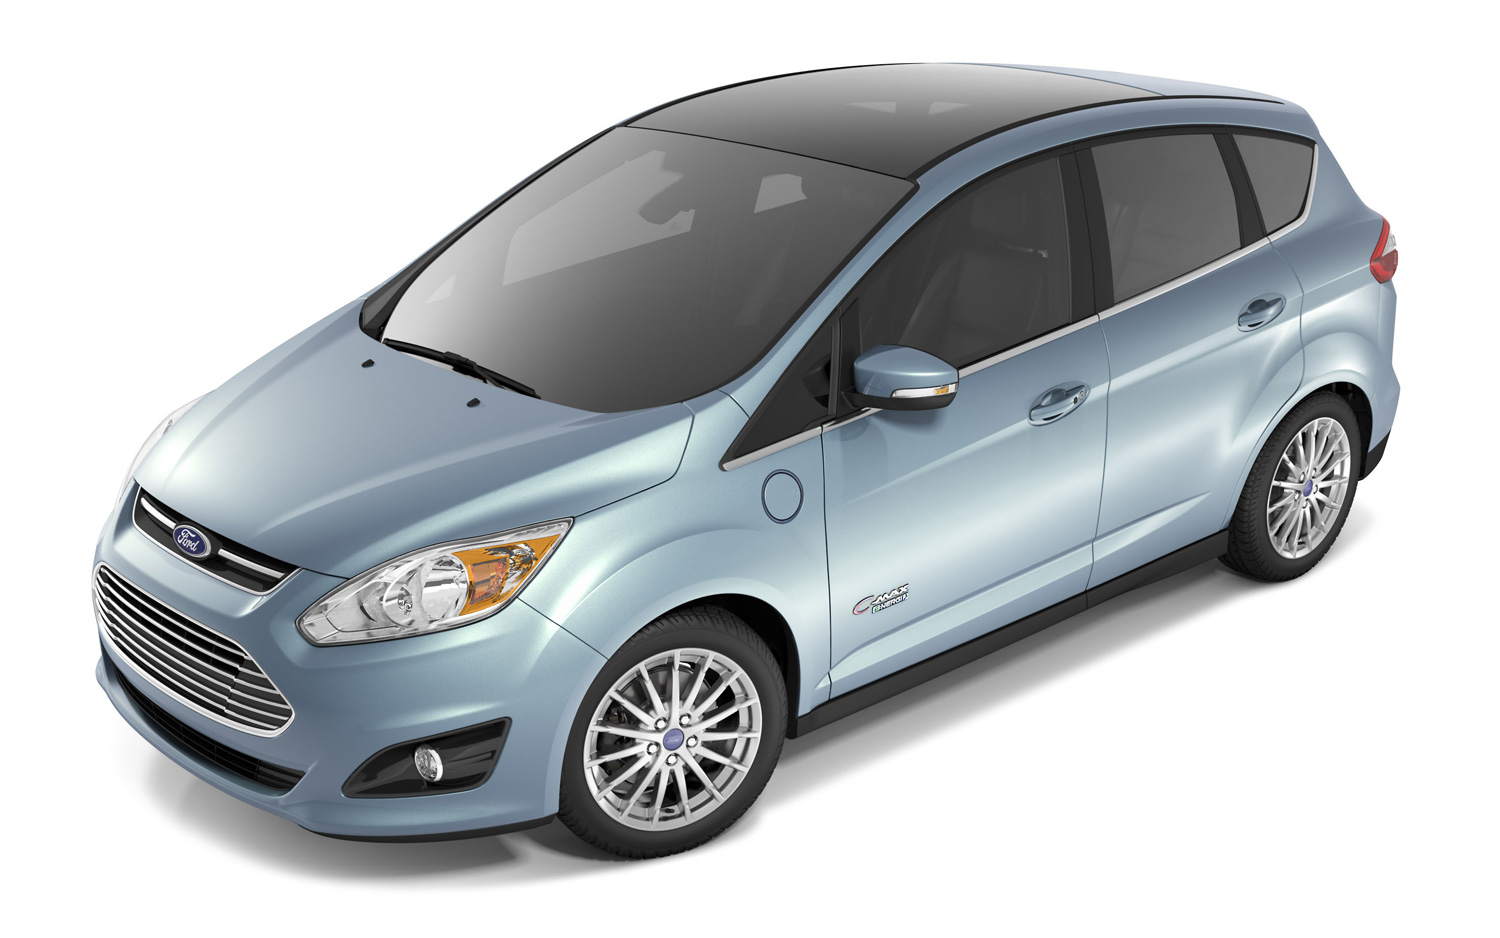 2013-Ford-C-Max-Energi-side-view-in-studio